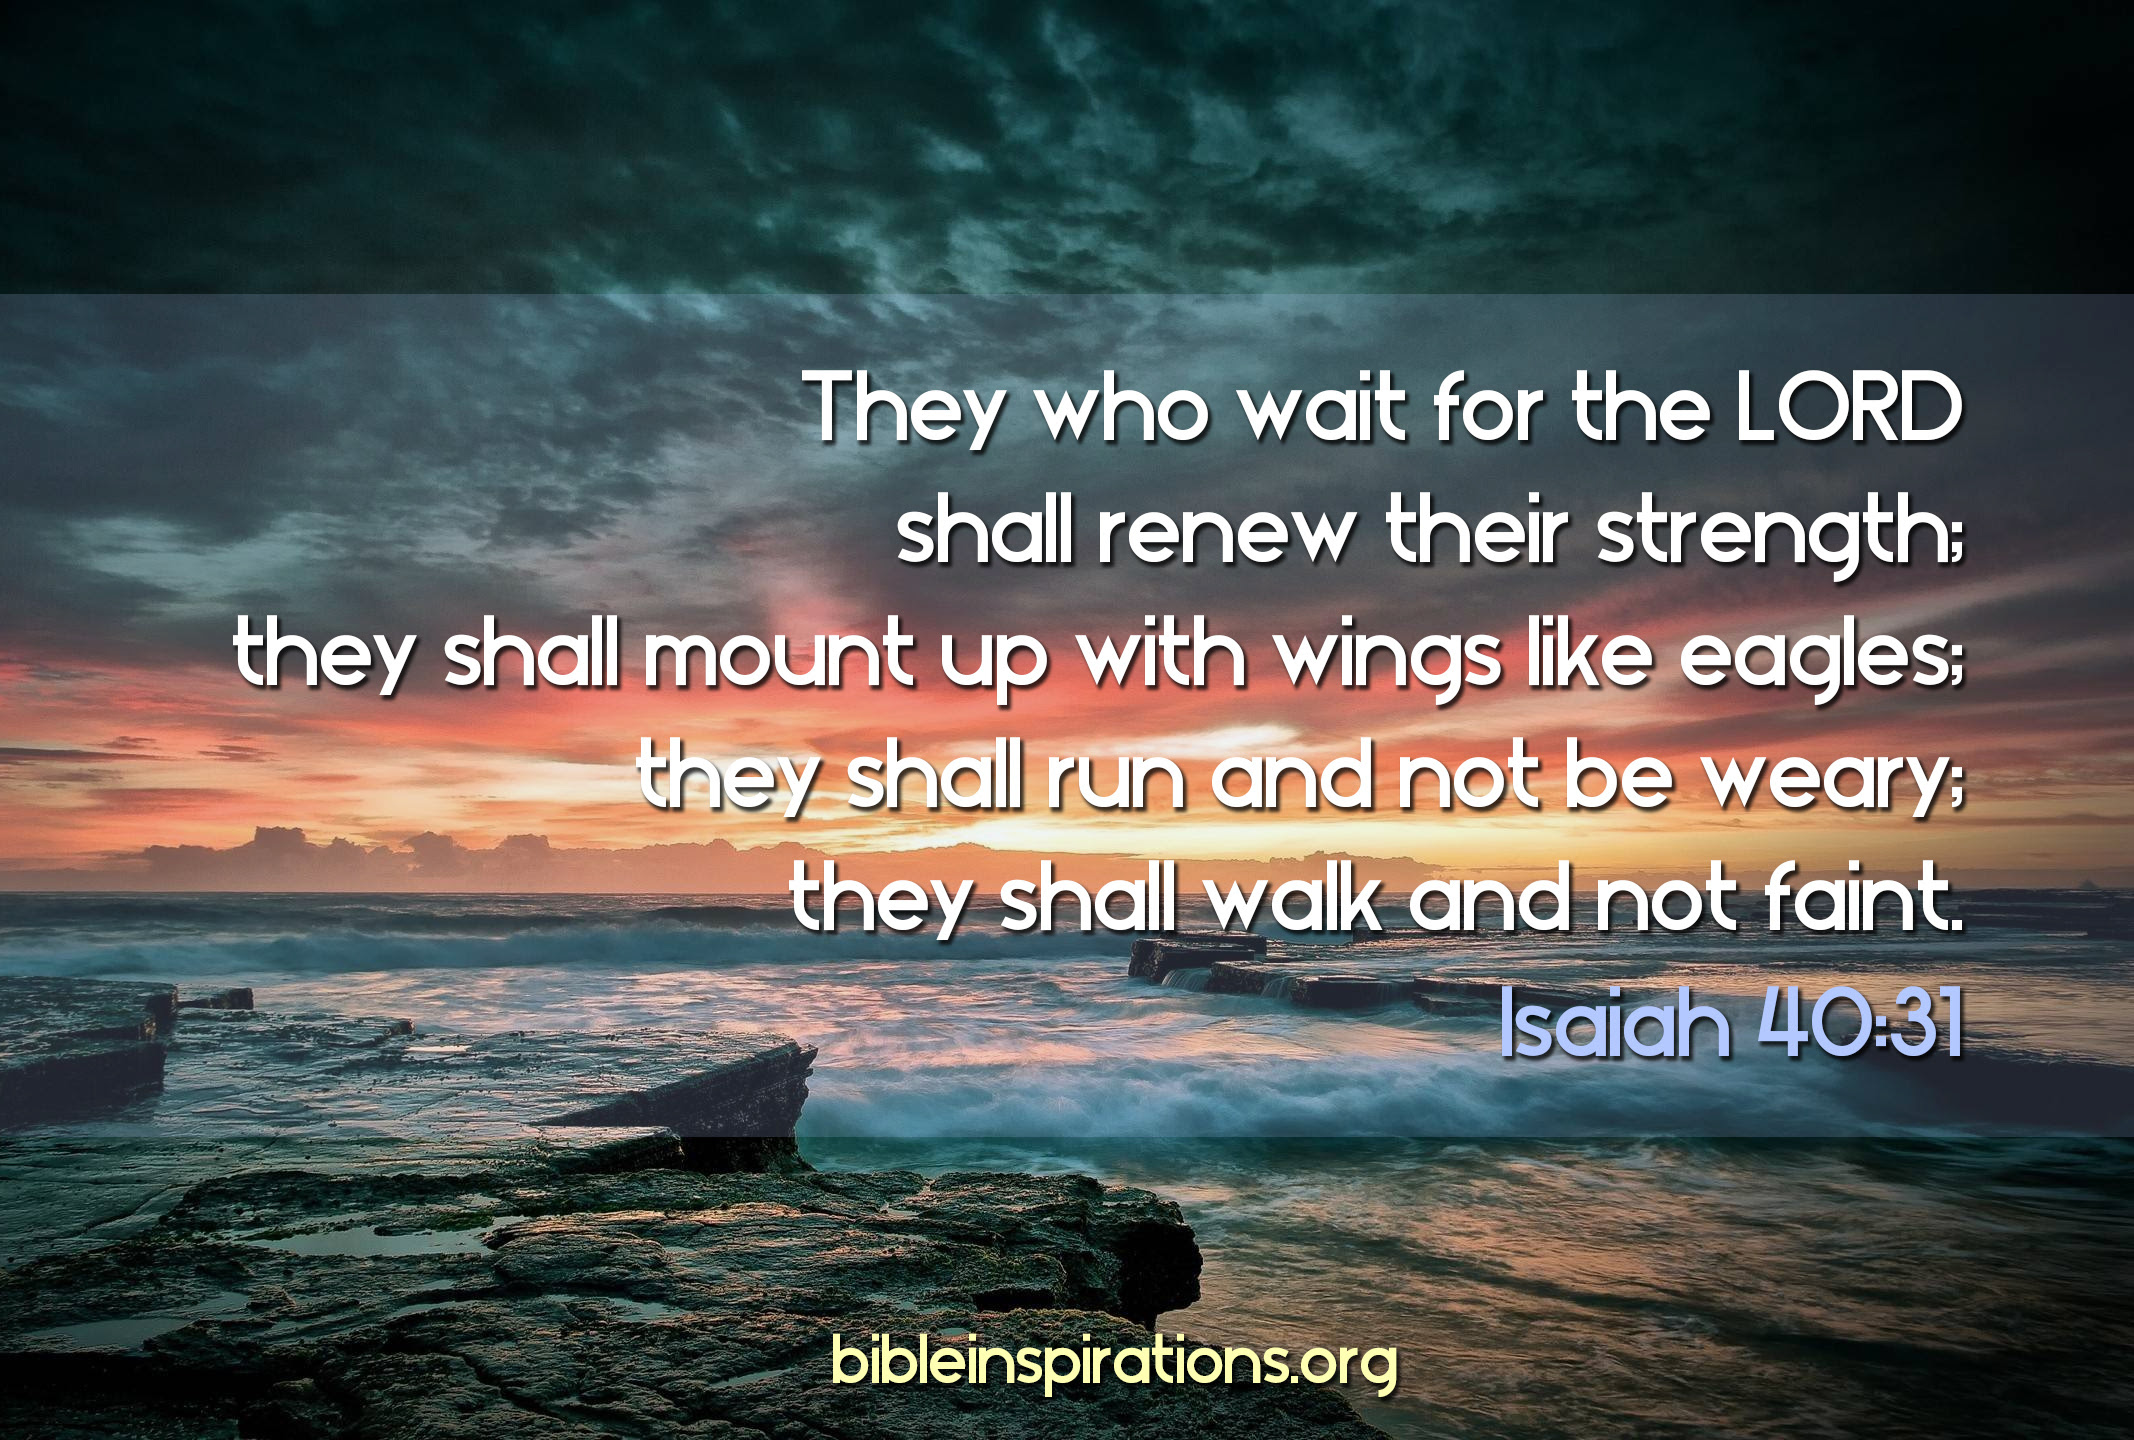 Shareable Images Page 3 Bible Inspirations